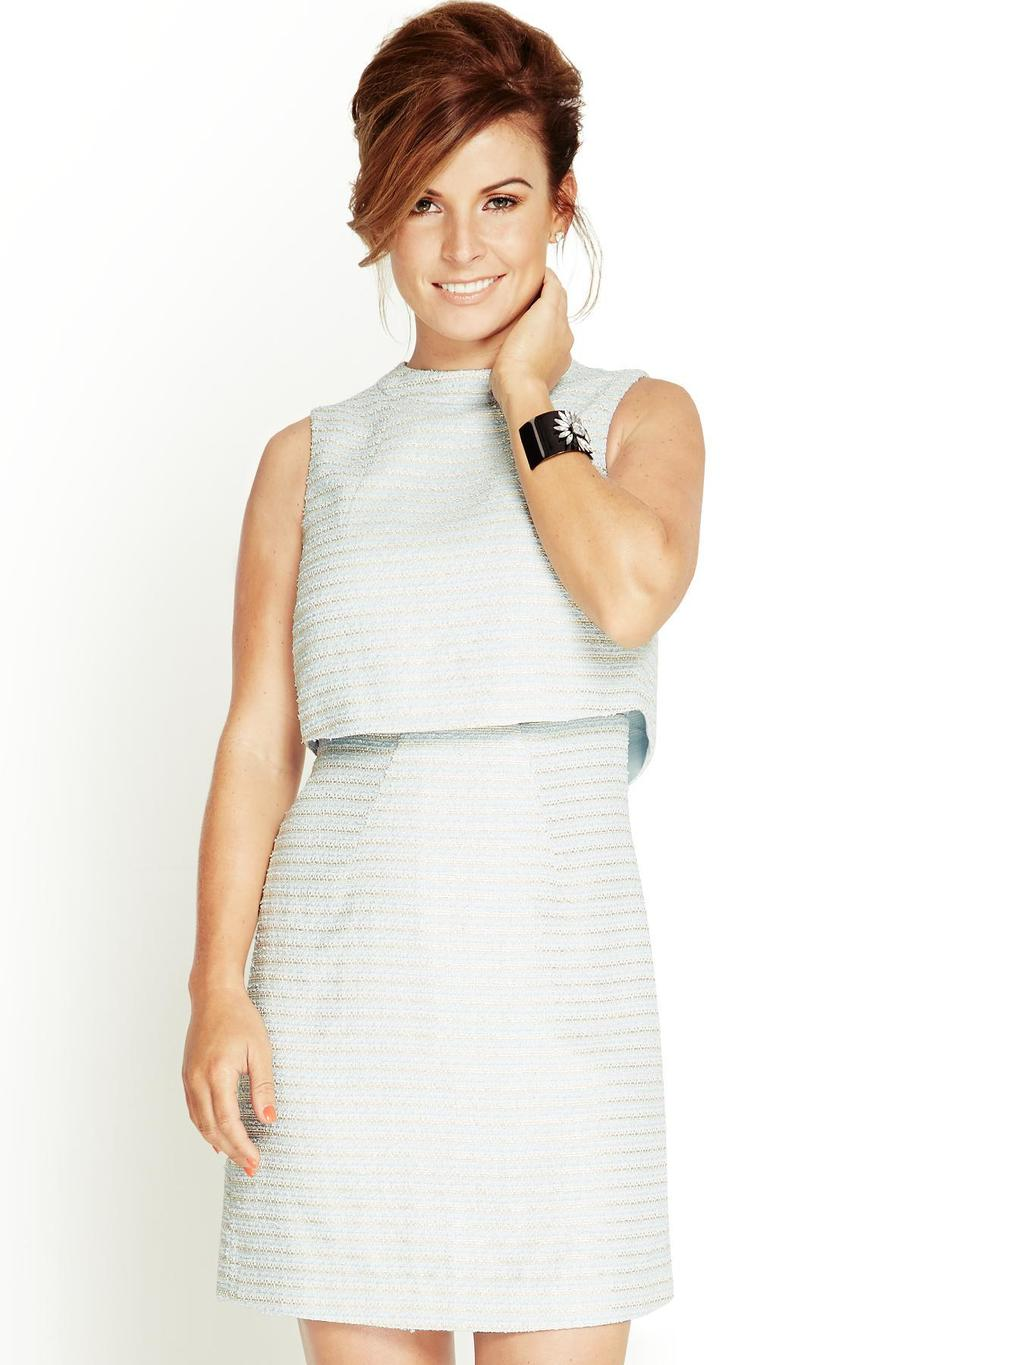 Boucle 2 In 1 Dress, Blue - style: shift; length: mid thigh; fit: tailored/fitted; pattern: horizontal stripes; sleeve style: sleeveless; neckline: high neck; secondary colour: ivory/cream; predominant colour: pale blue; occasions: evening, occasion; fibres: polyester/polyamide - mix; sleeve length: sleeveless; pattern type: fabric; pattern size: standard; texture group: other - light to midweight; season: s/s 2014